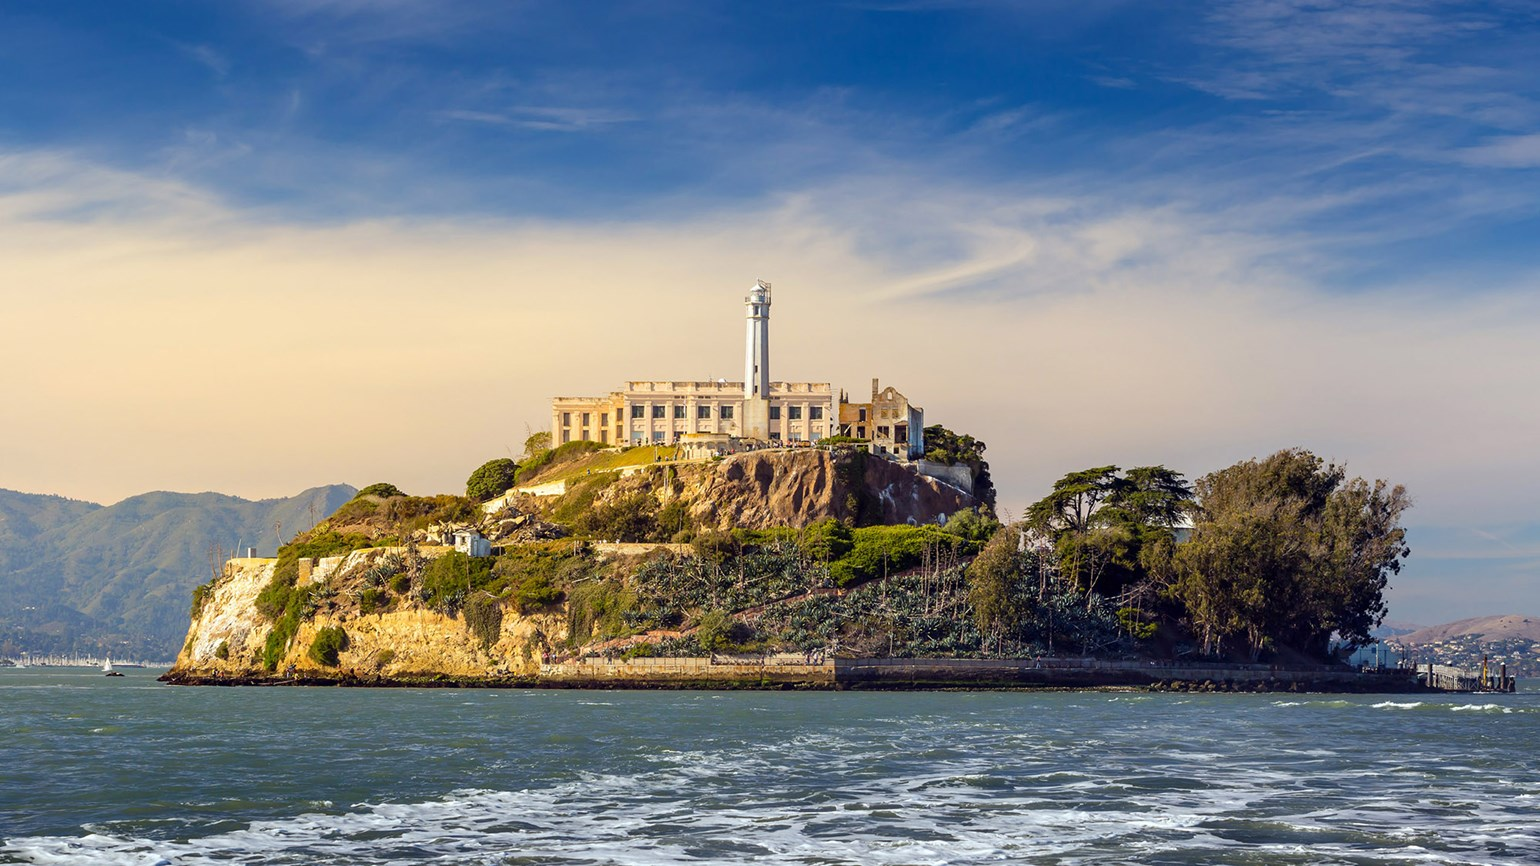 Alcatraz [Credit: f11photo/Shutterstock.com]